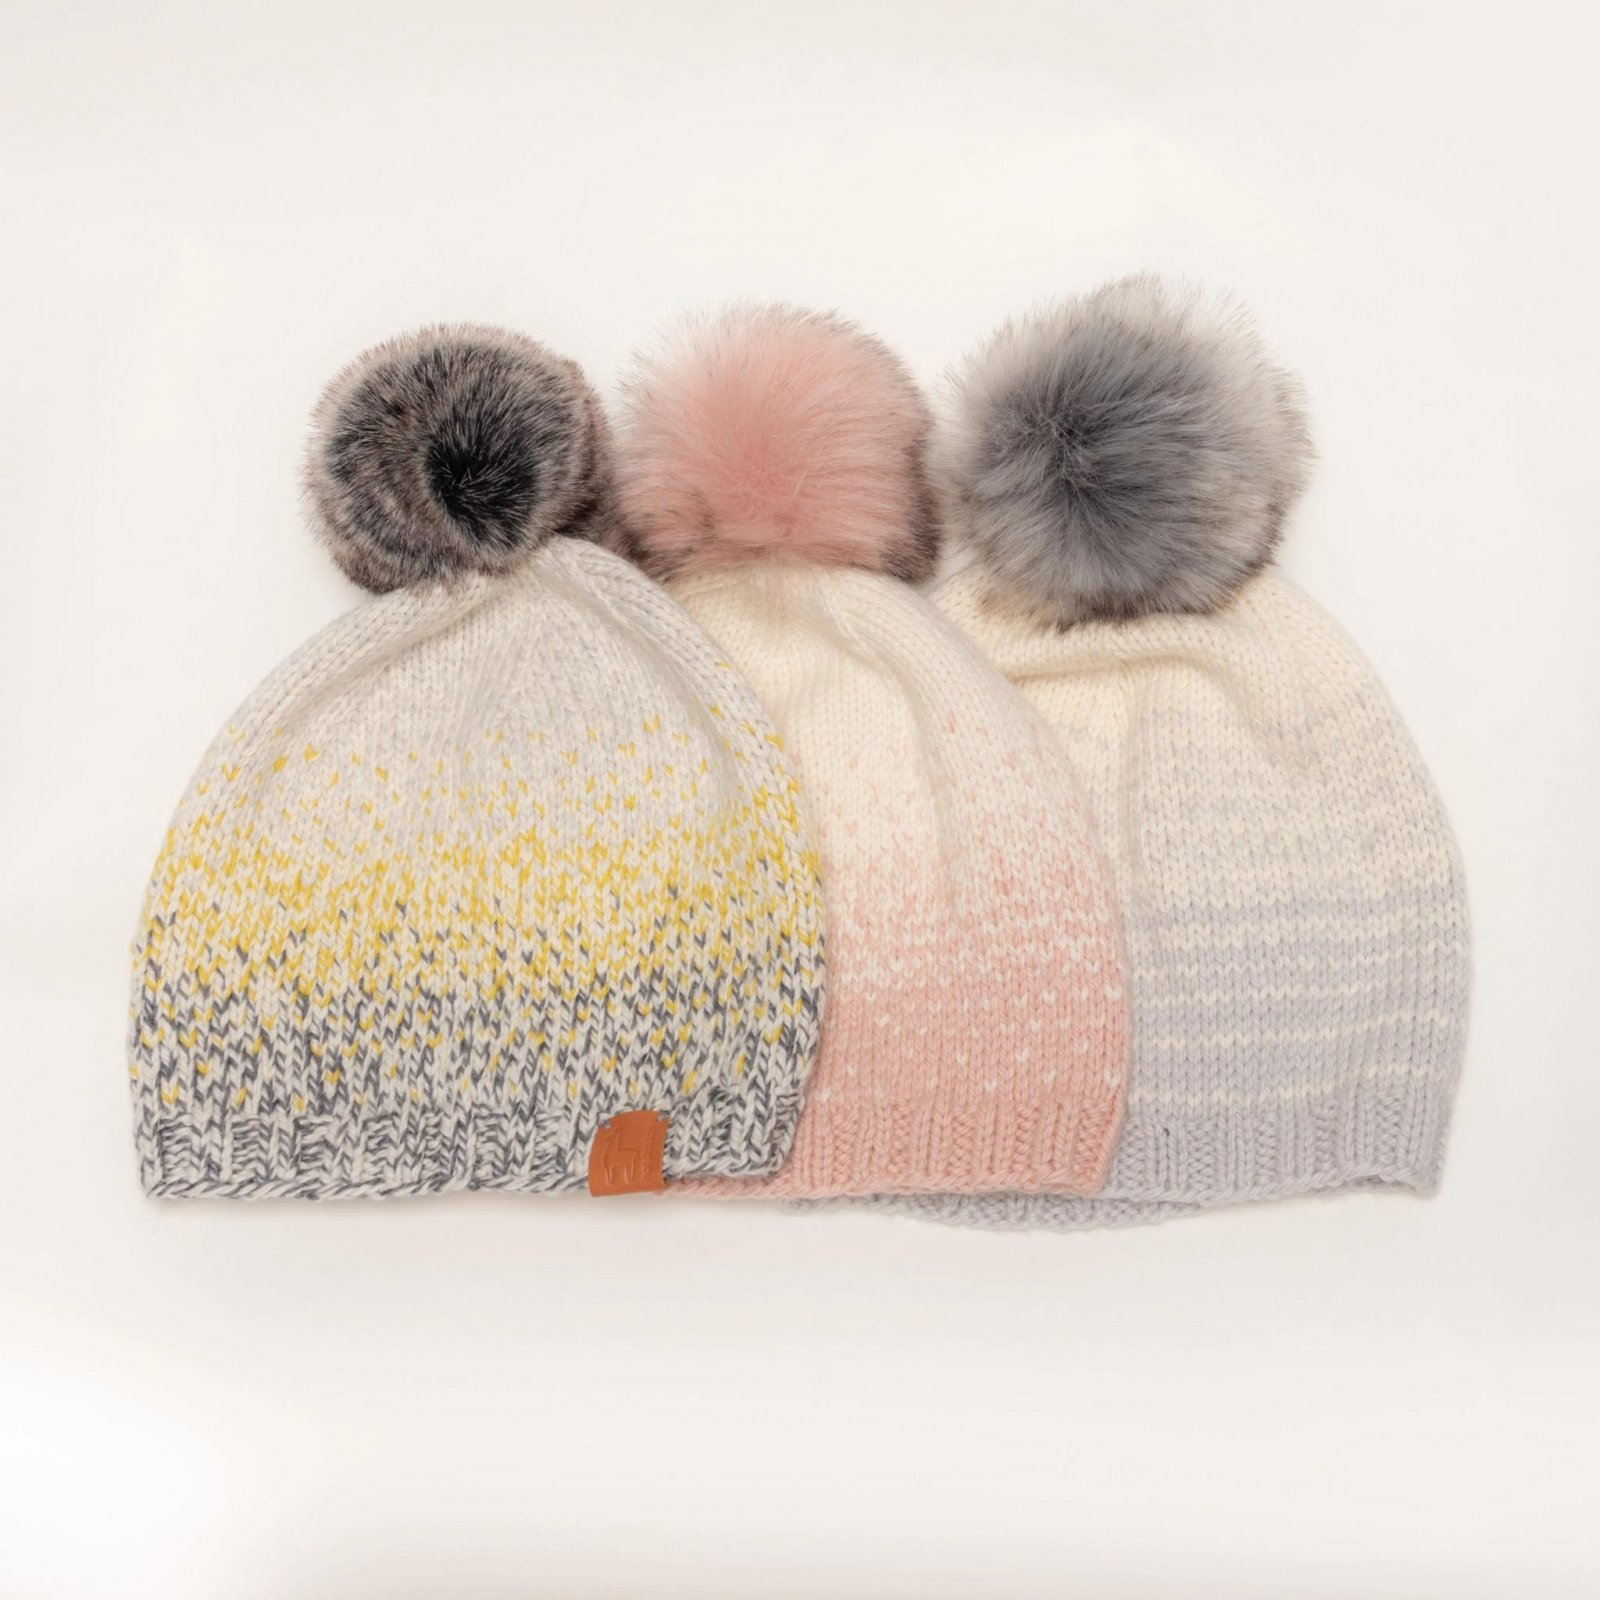 Ikigai Stardust Hat Kit with Pom Pom - Rose